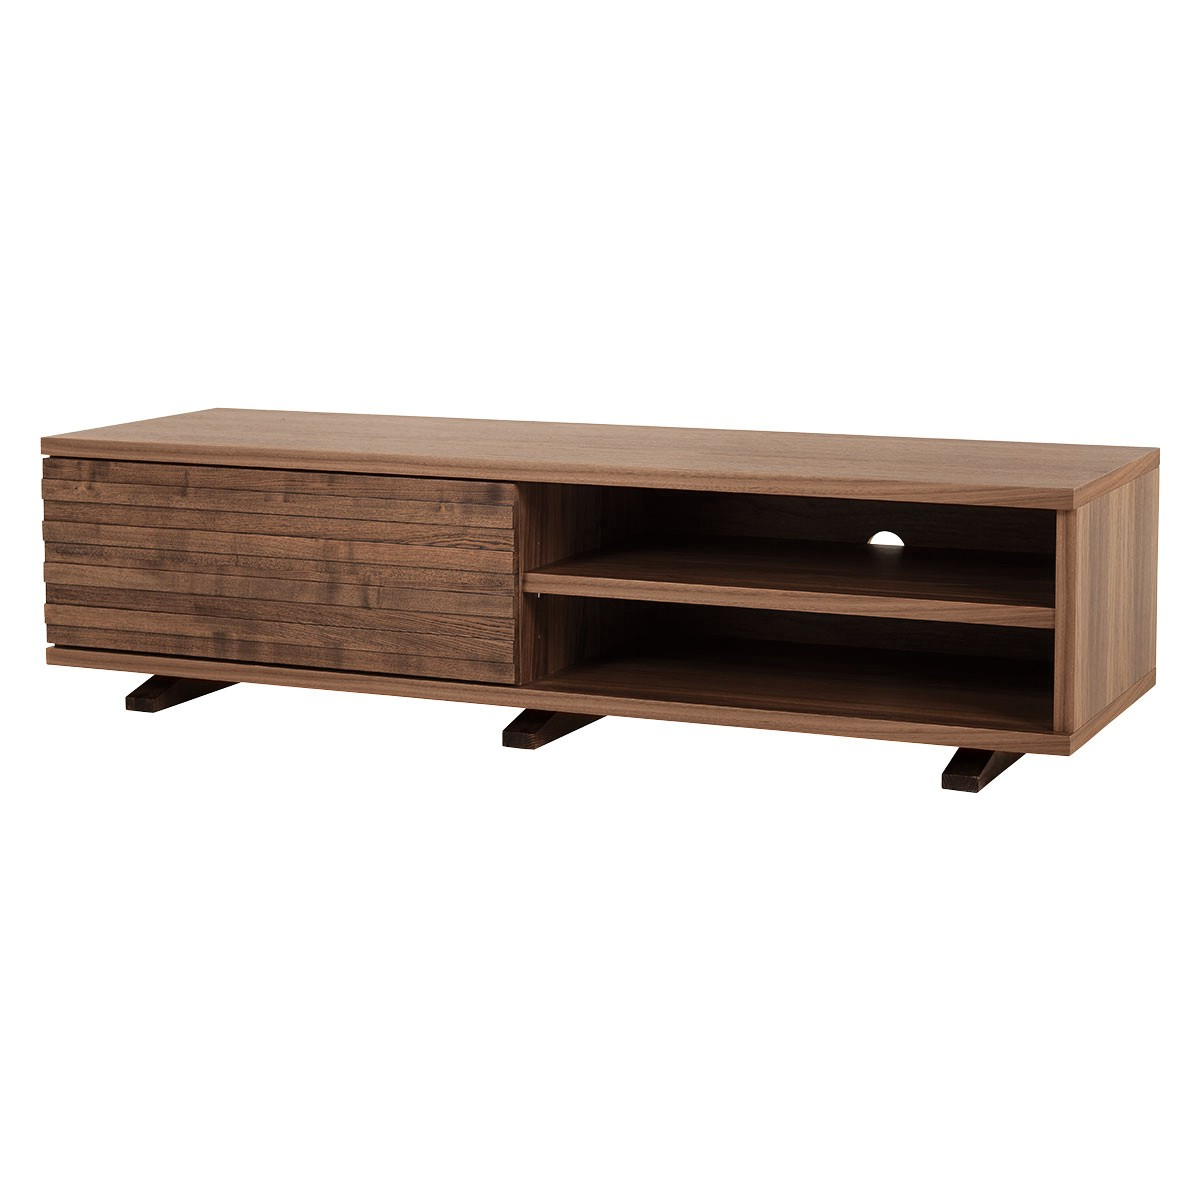 Newest Walnut Tv Stands Throughout Enzo Walnut Tv Stand With One Storage Drawer (Gallery 1 of 20)